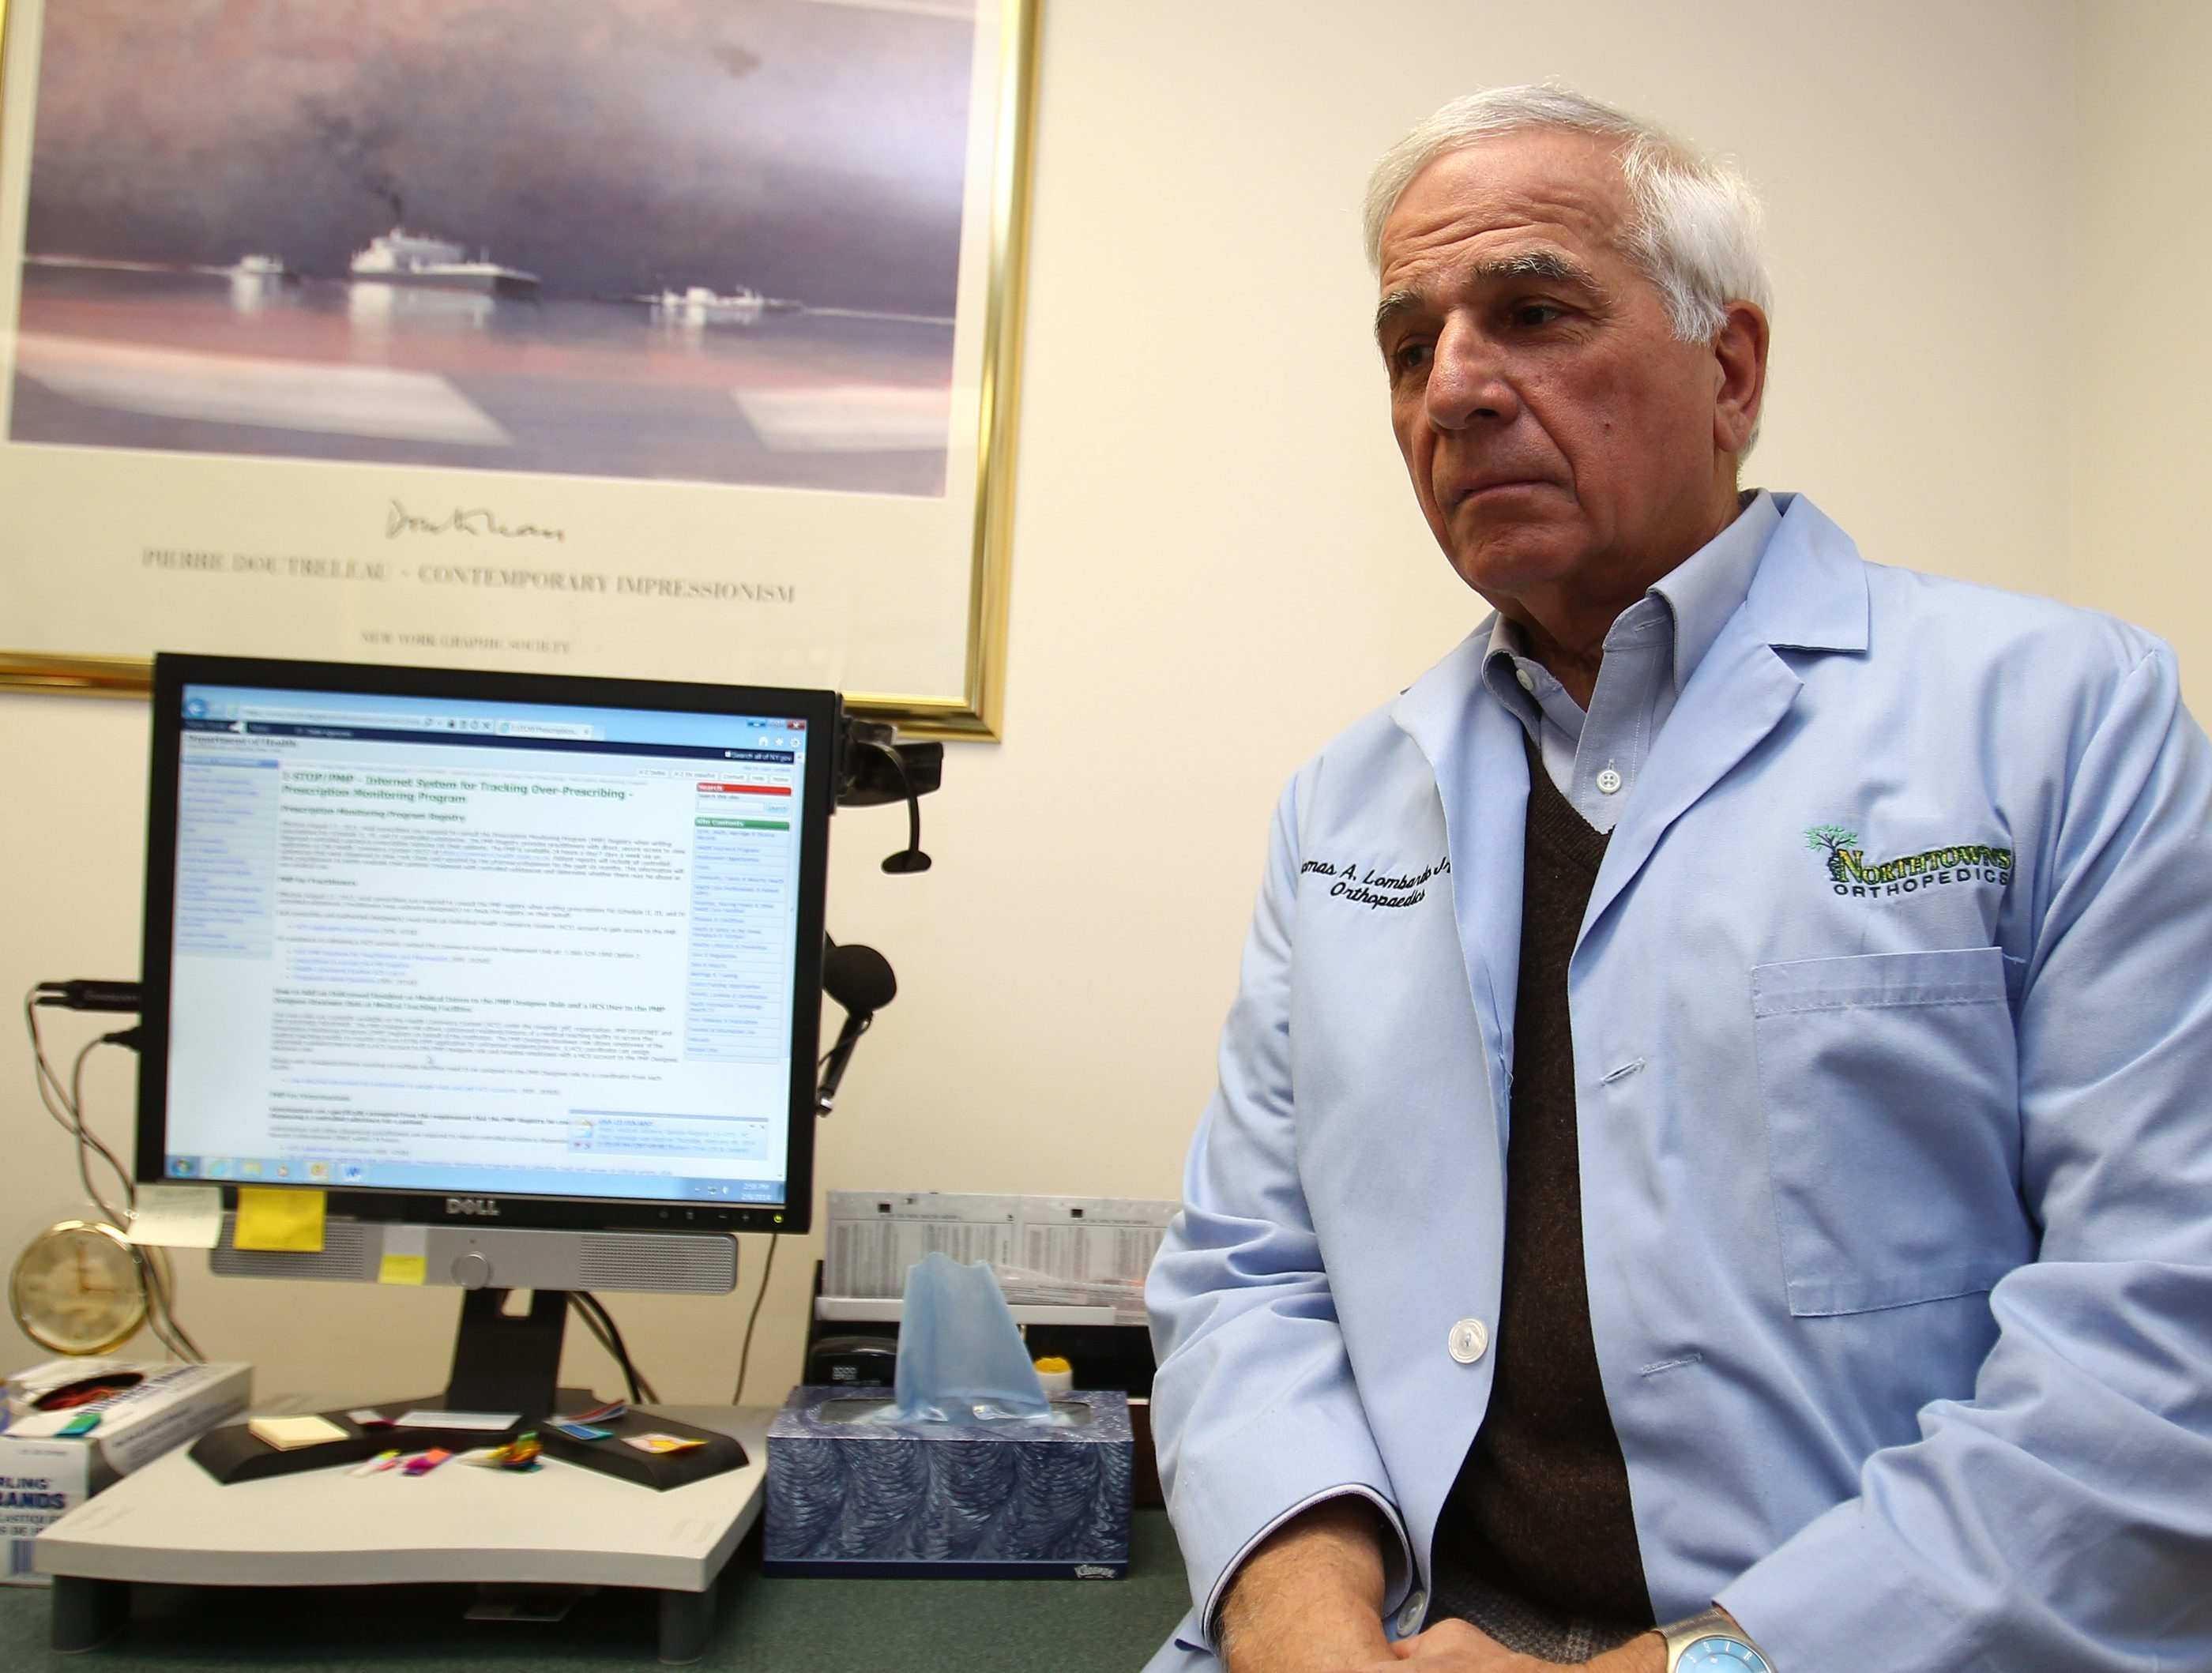 Dr. Thomas A. Lombardo Jr. initially had doubts about the I-STOP law that lists patients' real-time drug prescriptions, but has changed his mind after seeing its effectiveness in his practice.